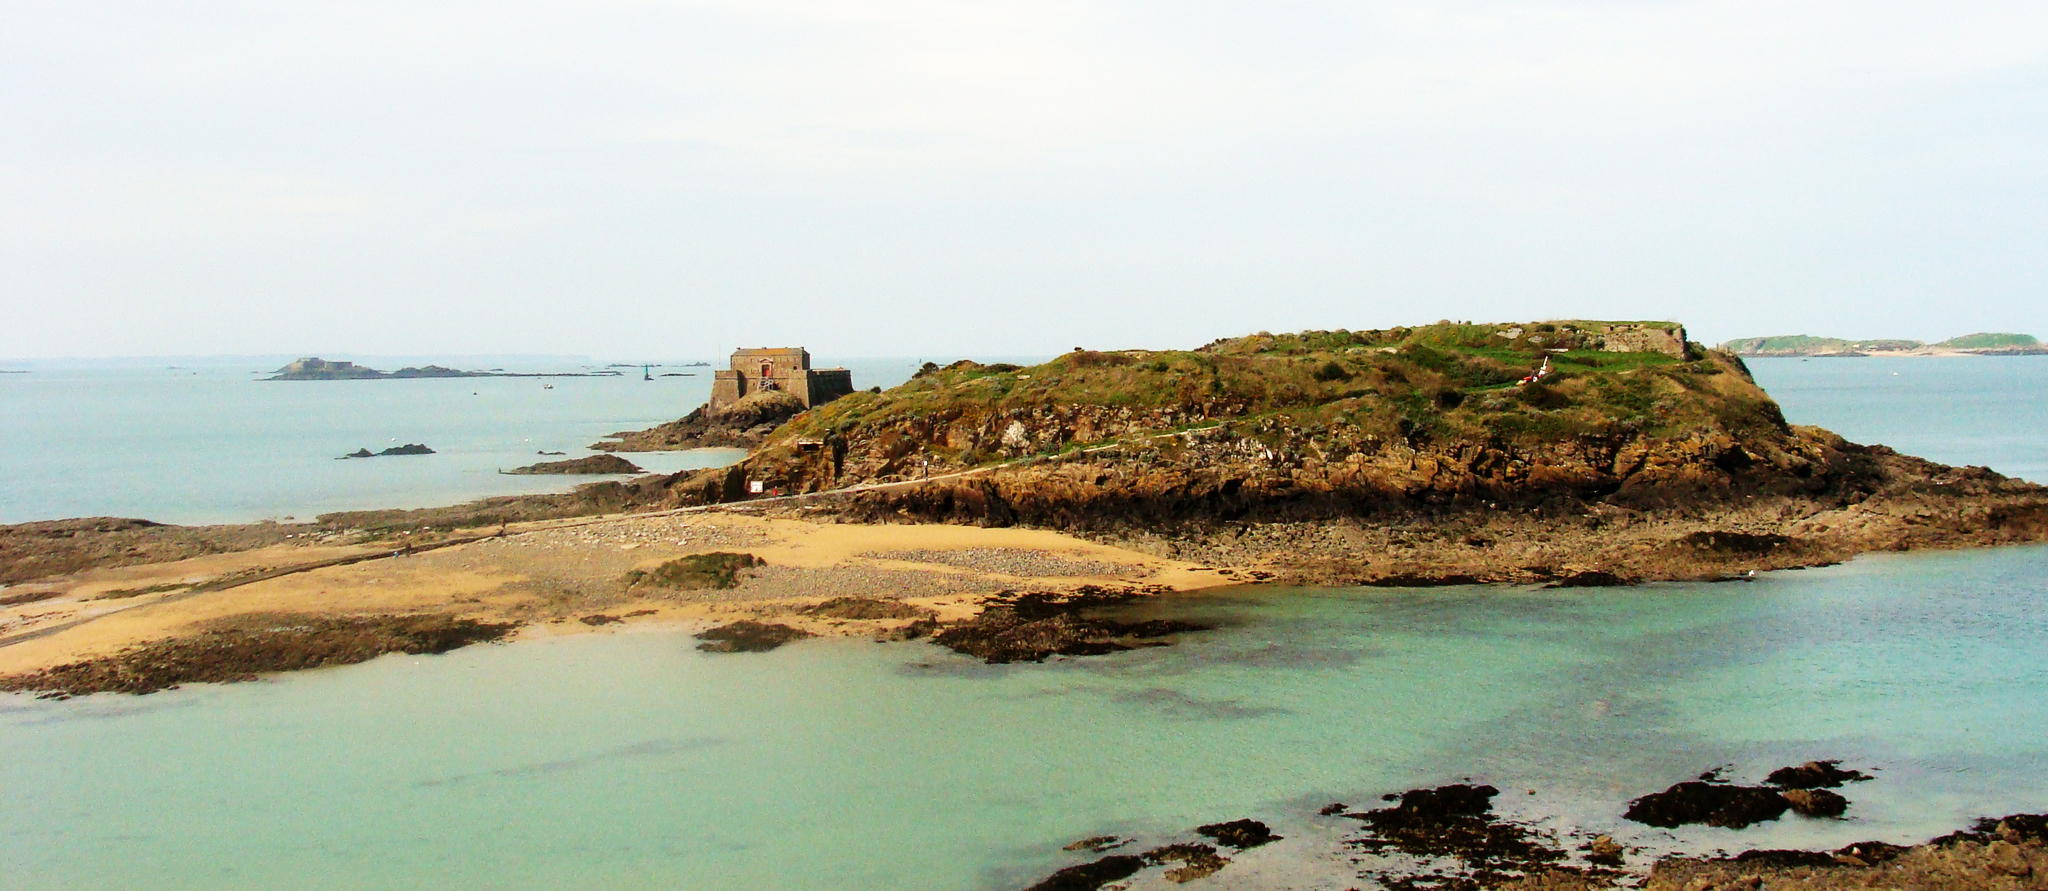 Article_Saint_Malo_Gd_Be_Petit_Be